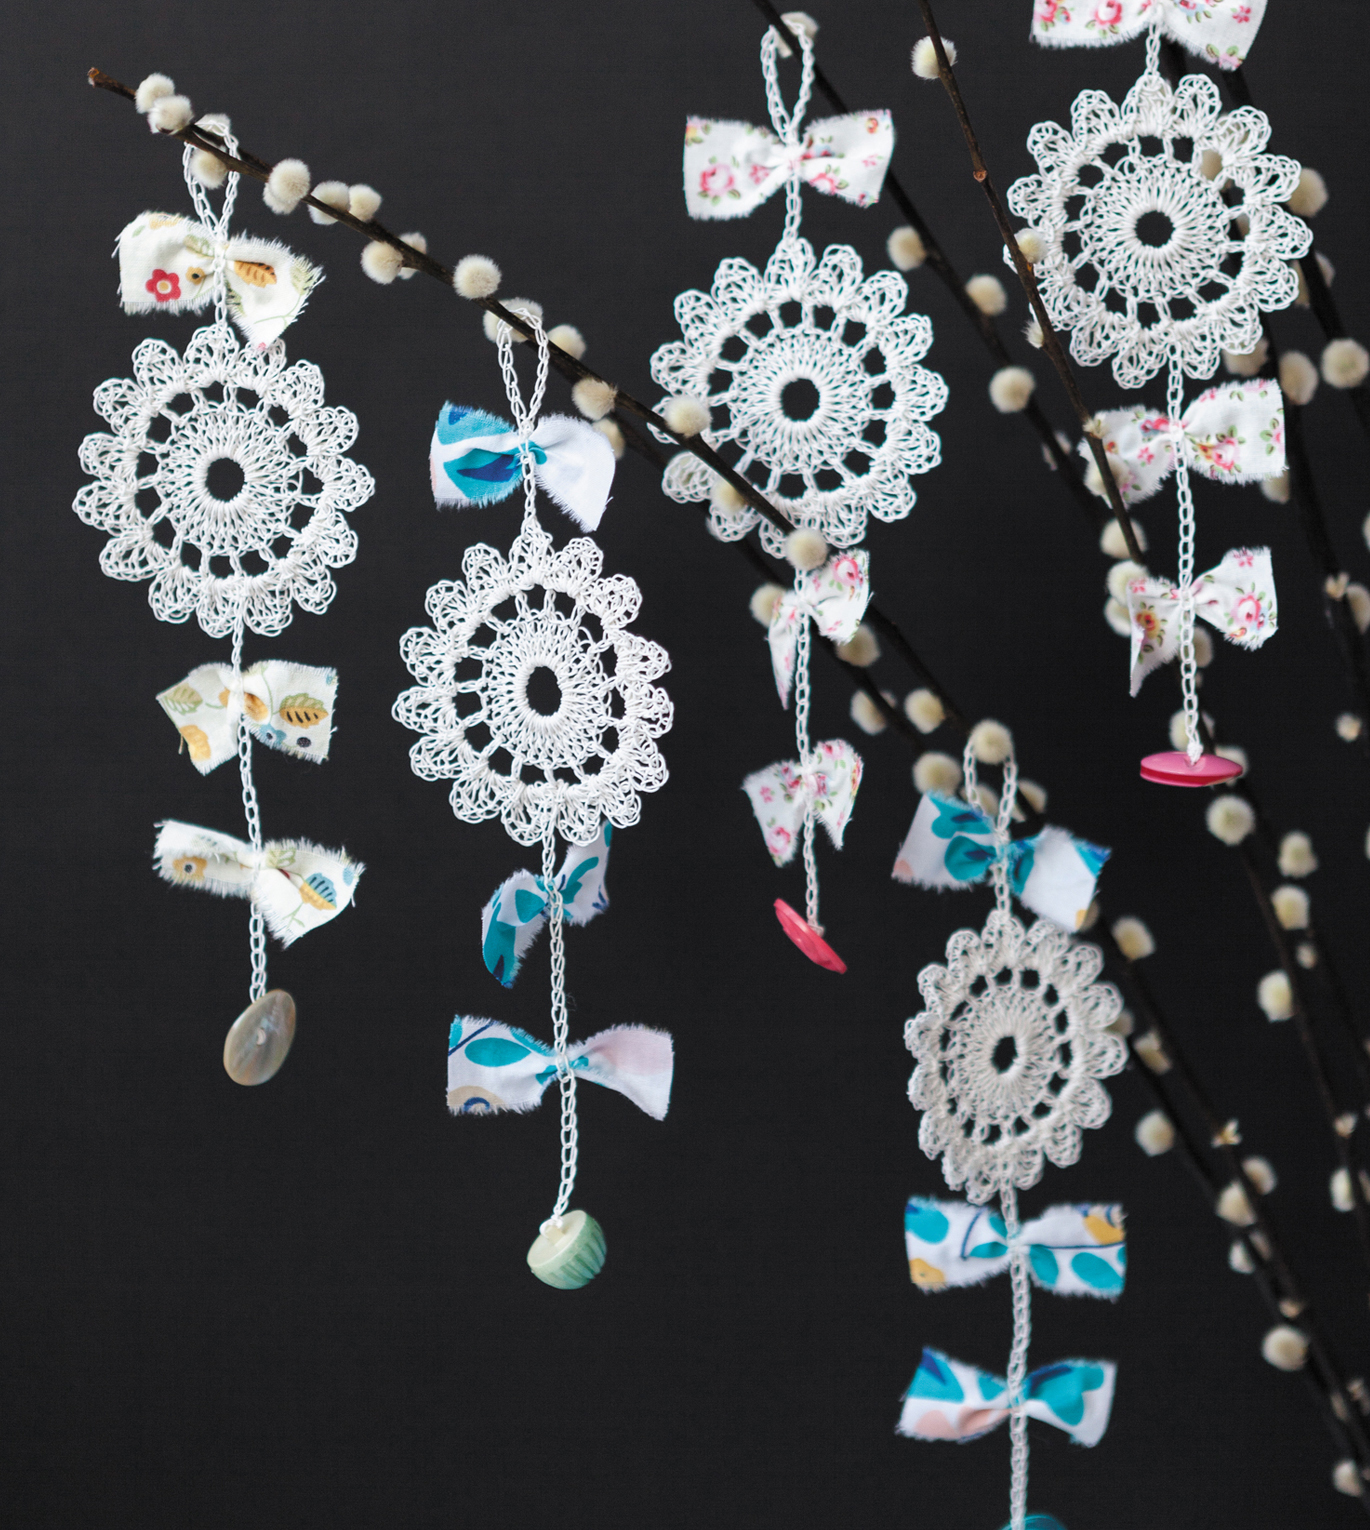 Paper Flower Charms from Crochet Home by Emma Lamb.jpg